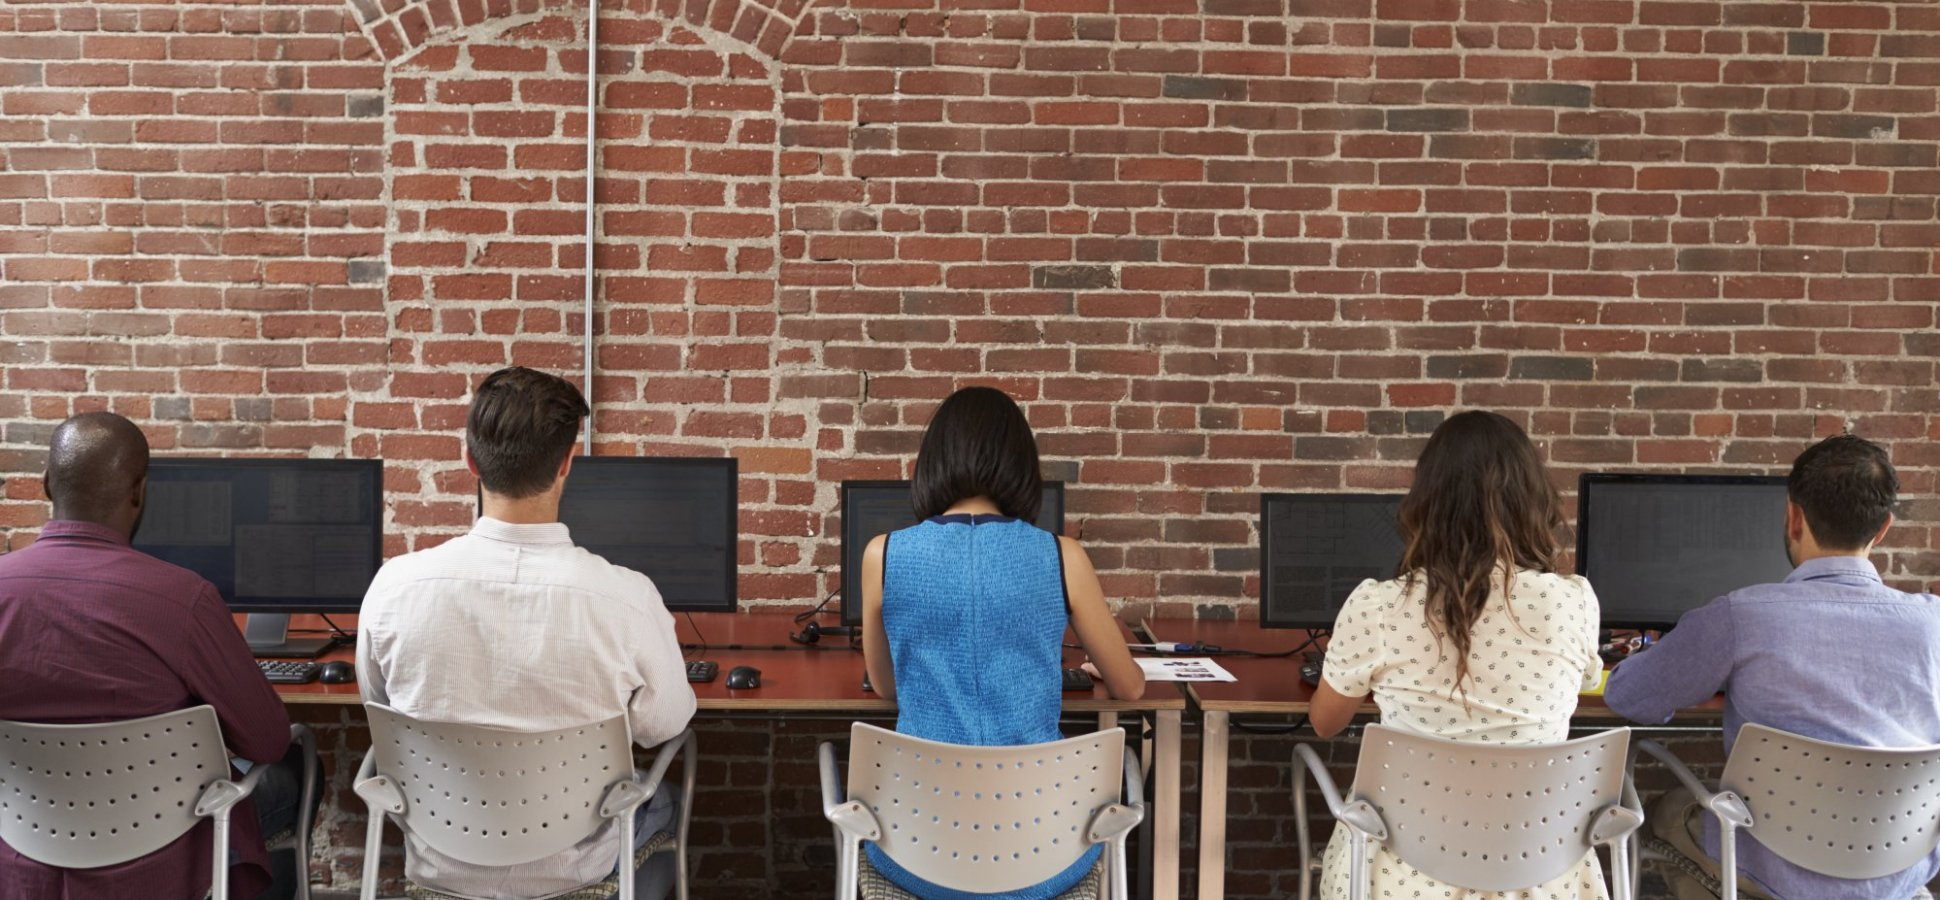 5 Huge Career Mistakes Millennials Always Make (and How to